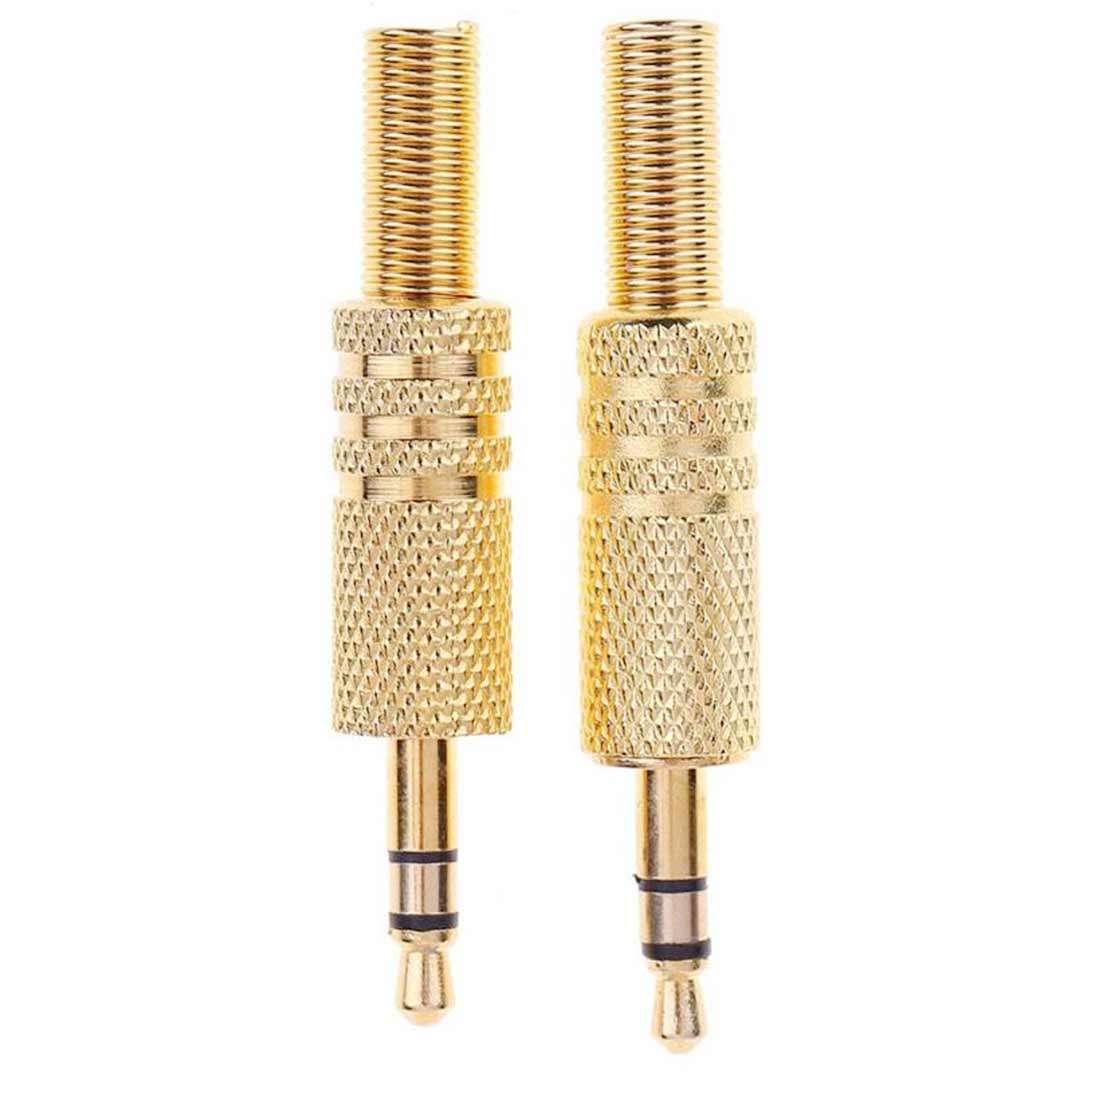 2Pcs 3.5 Stereo Dual Channel Headphone Plug Audio Small Three Core Plug 3.5 Headphone Plug 3.5 Welded Type Stereoconverter